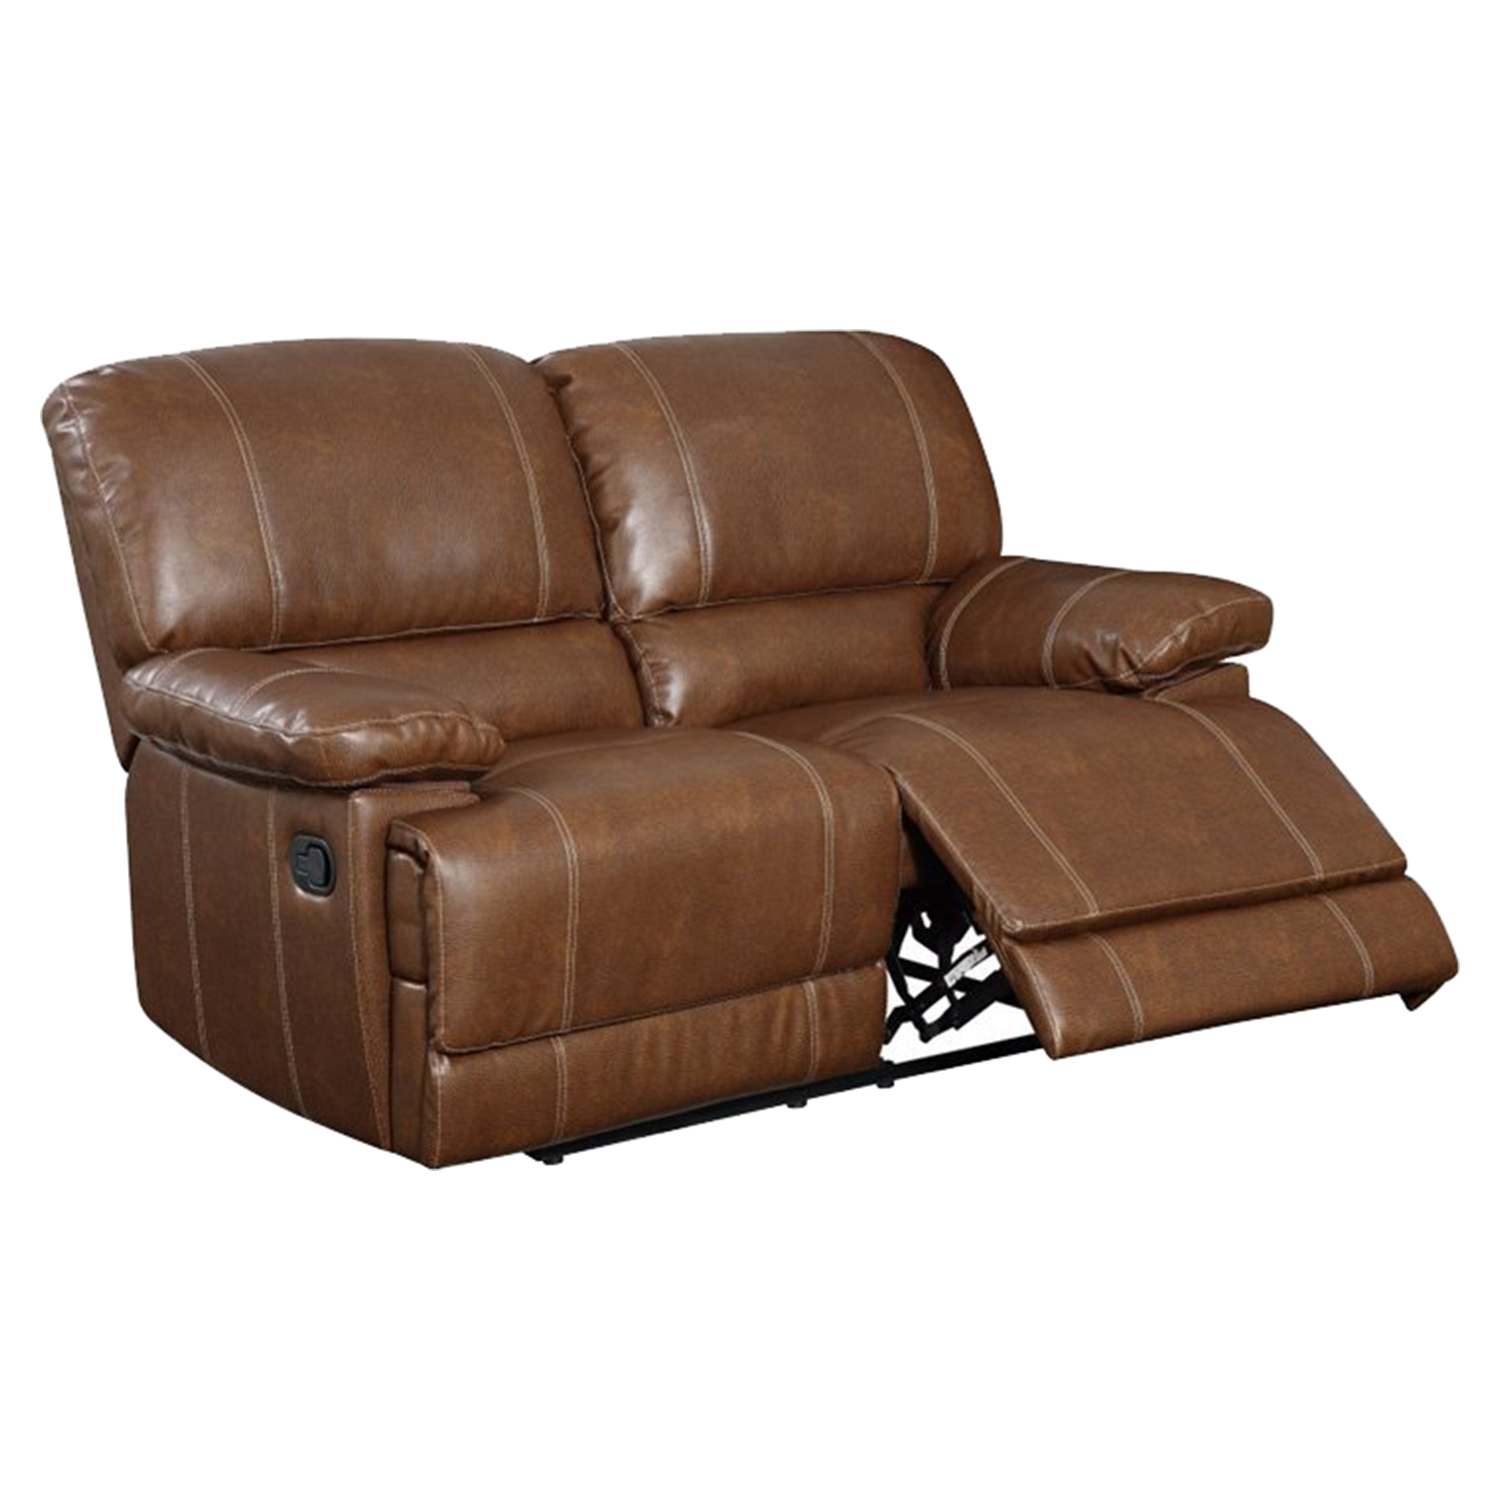 Rodeo Reclining Loveseat - Brown Leather - GLO-U9963-RODEO-BROWN-R-L-M